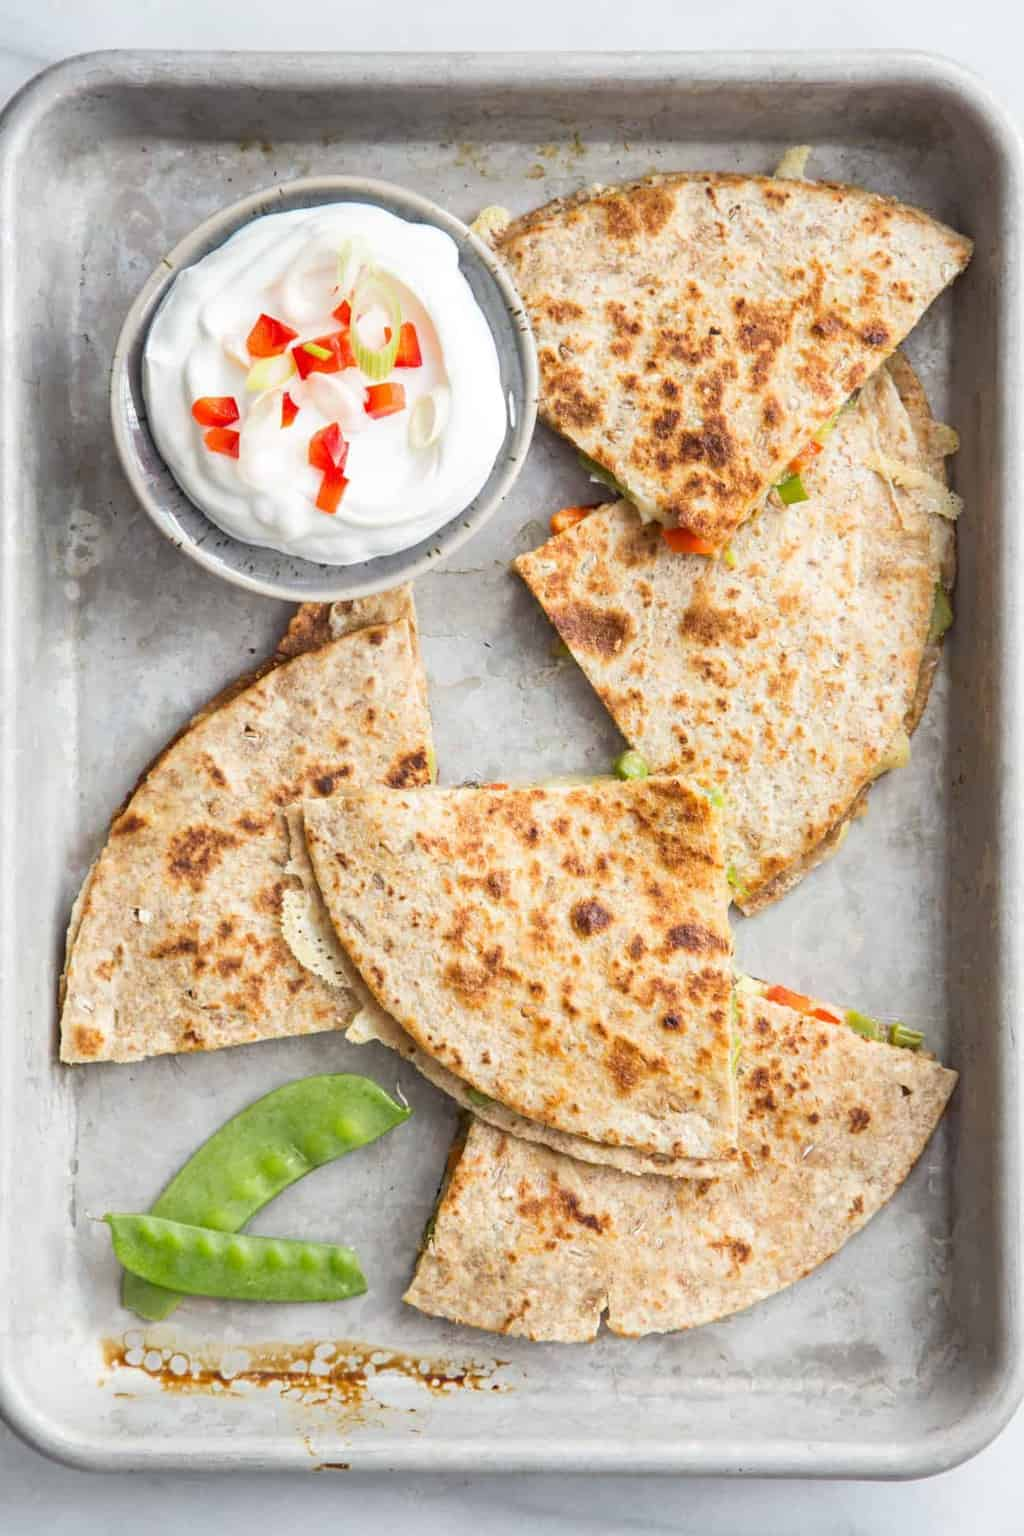 A Meatless Monday Crowd-Pleaser: Spring Vegetable Quesadillas